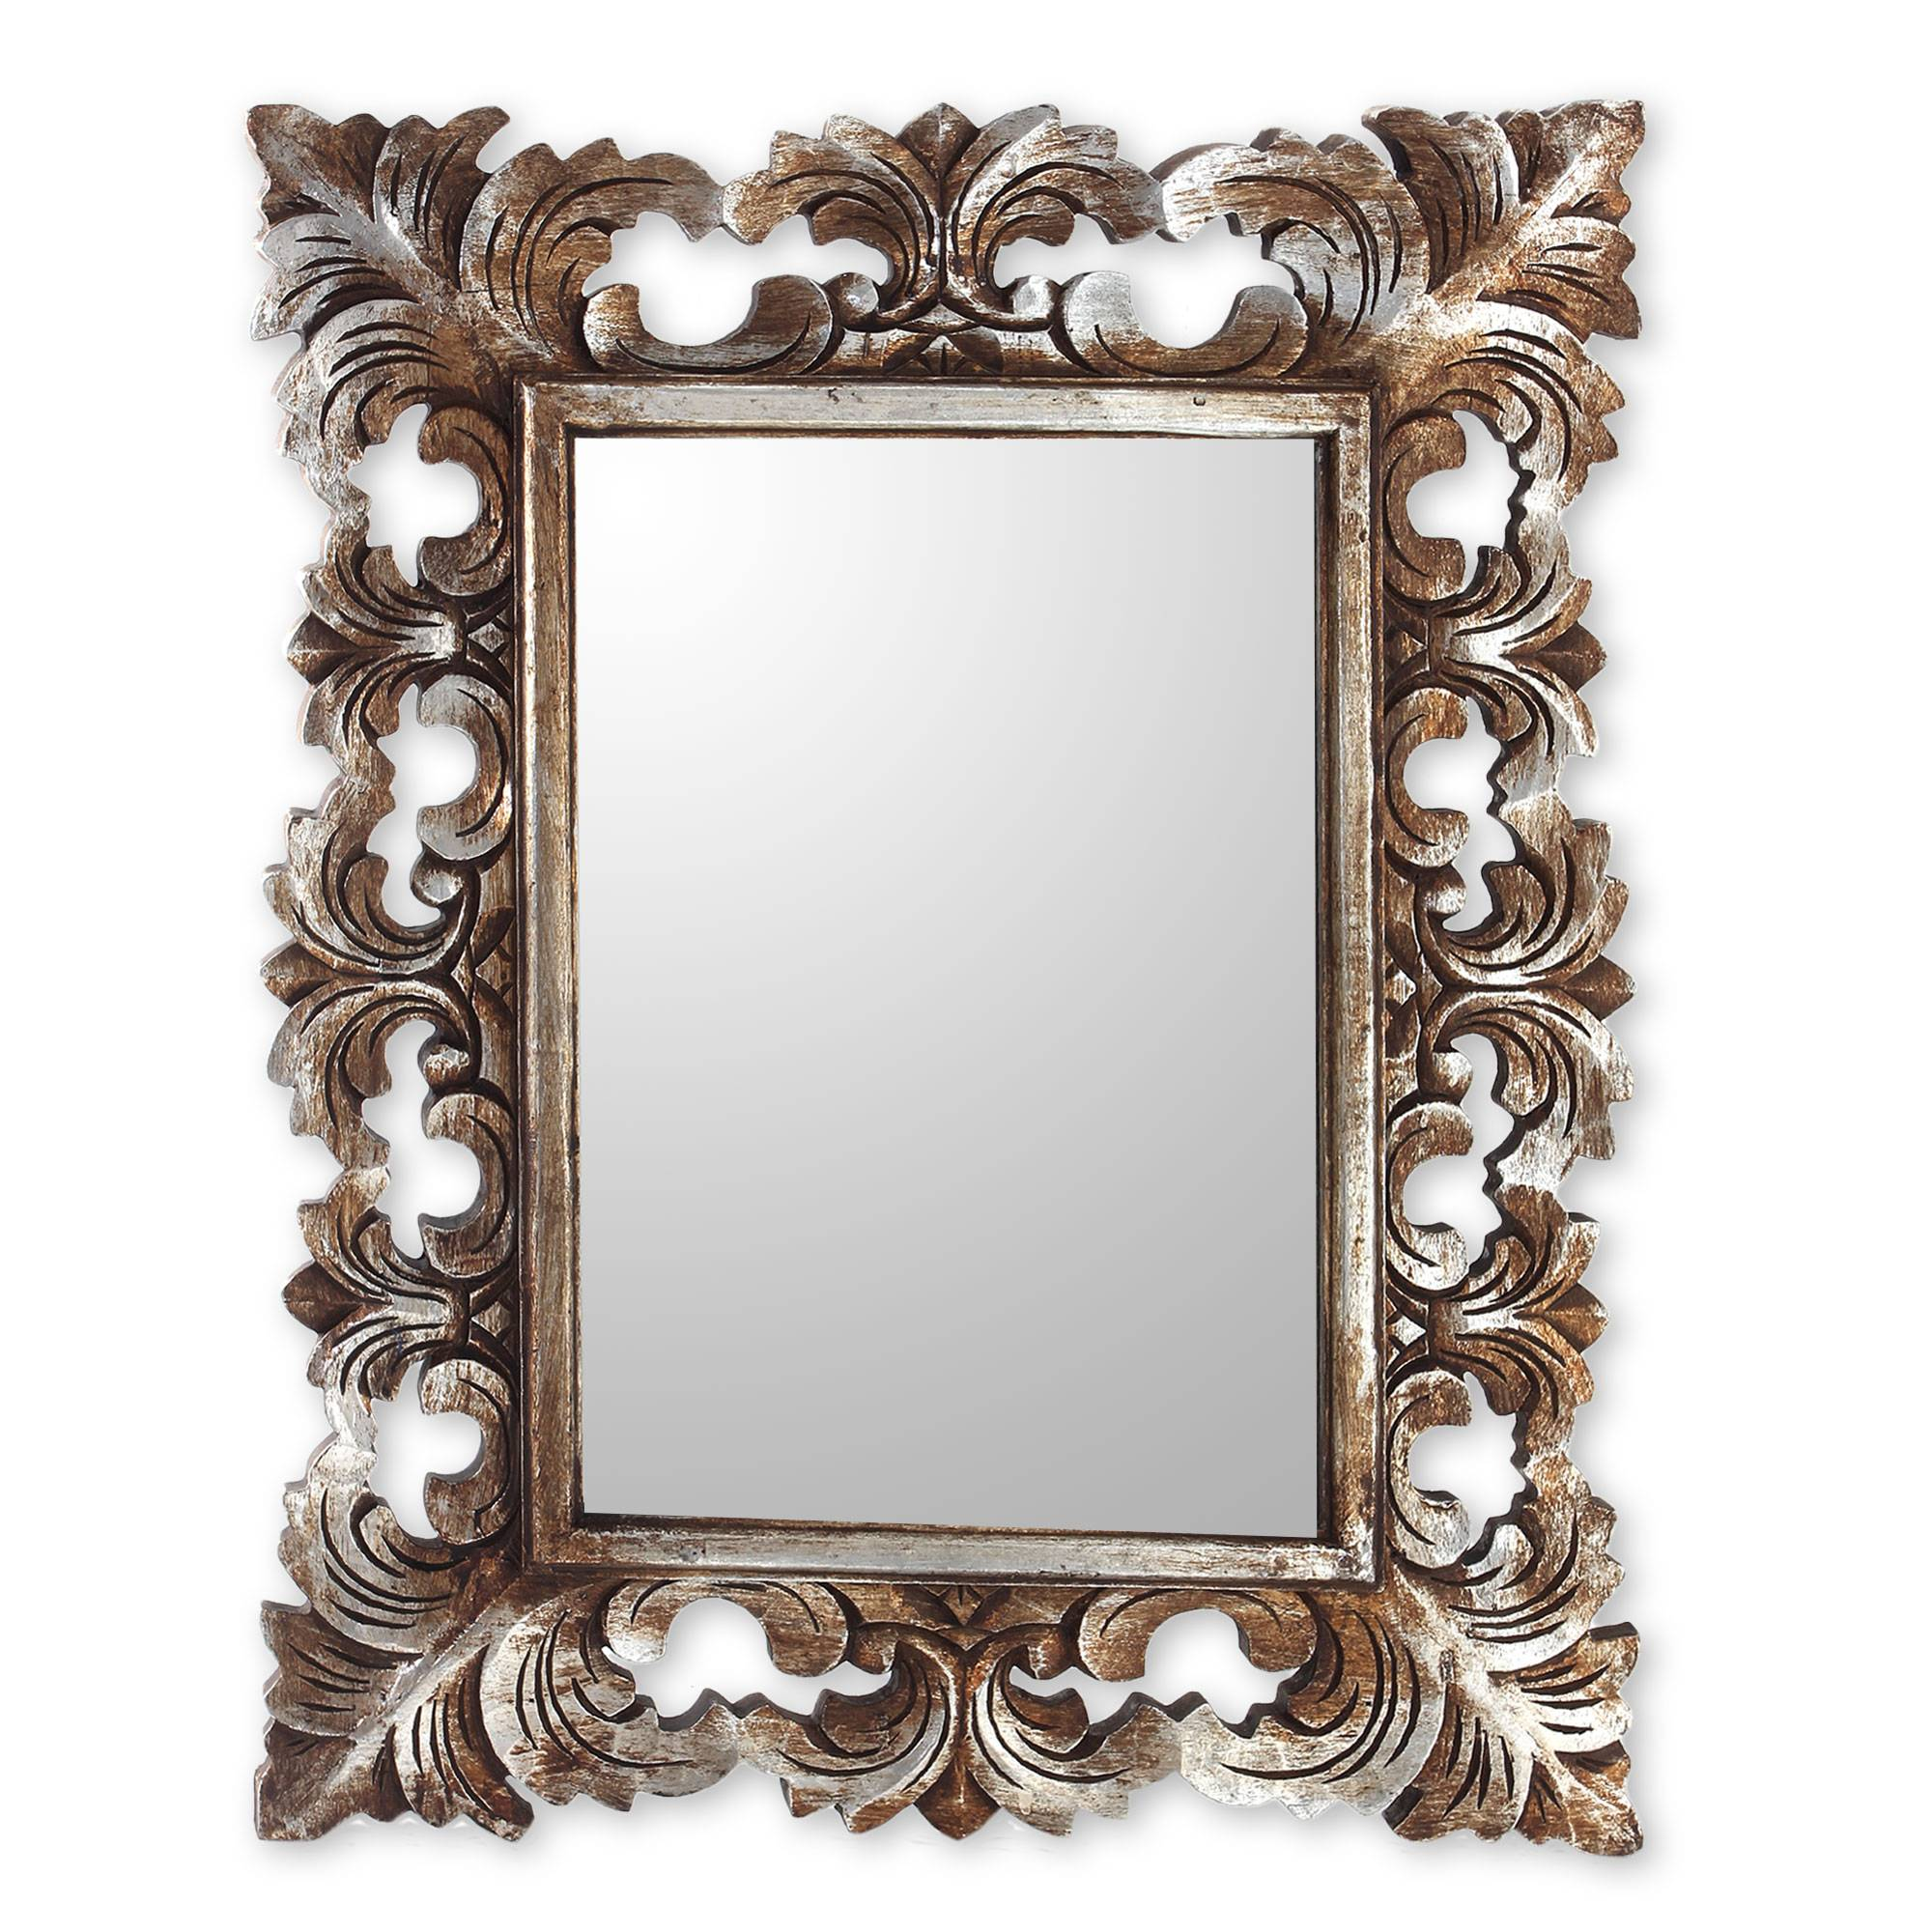 Silver Wall Mirrors hand carved wood wall mirror with distressed silver finish - padma